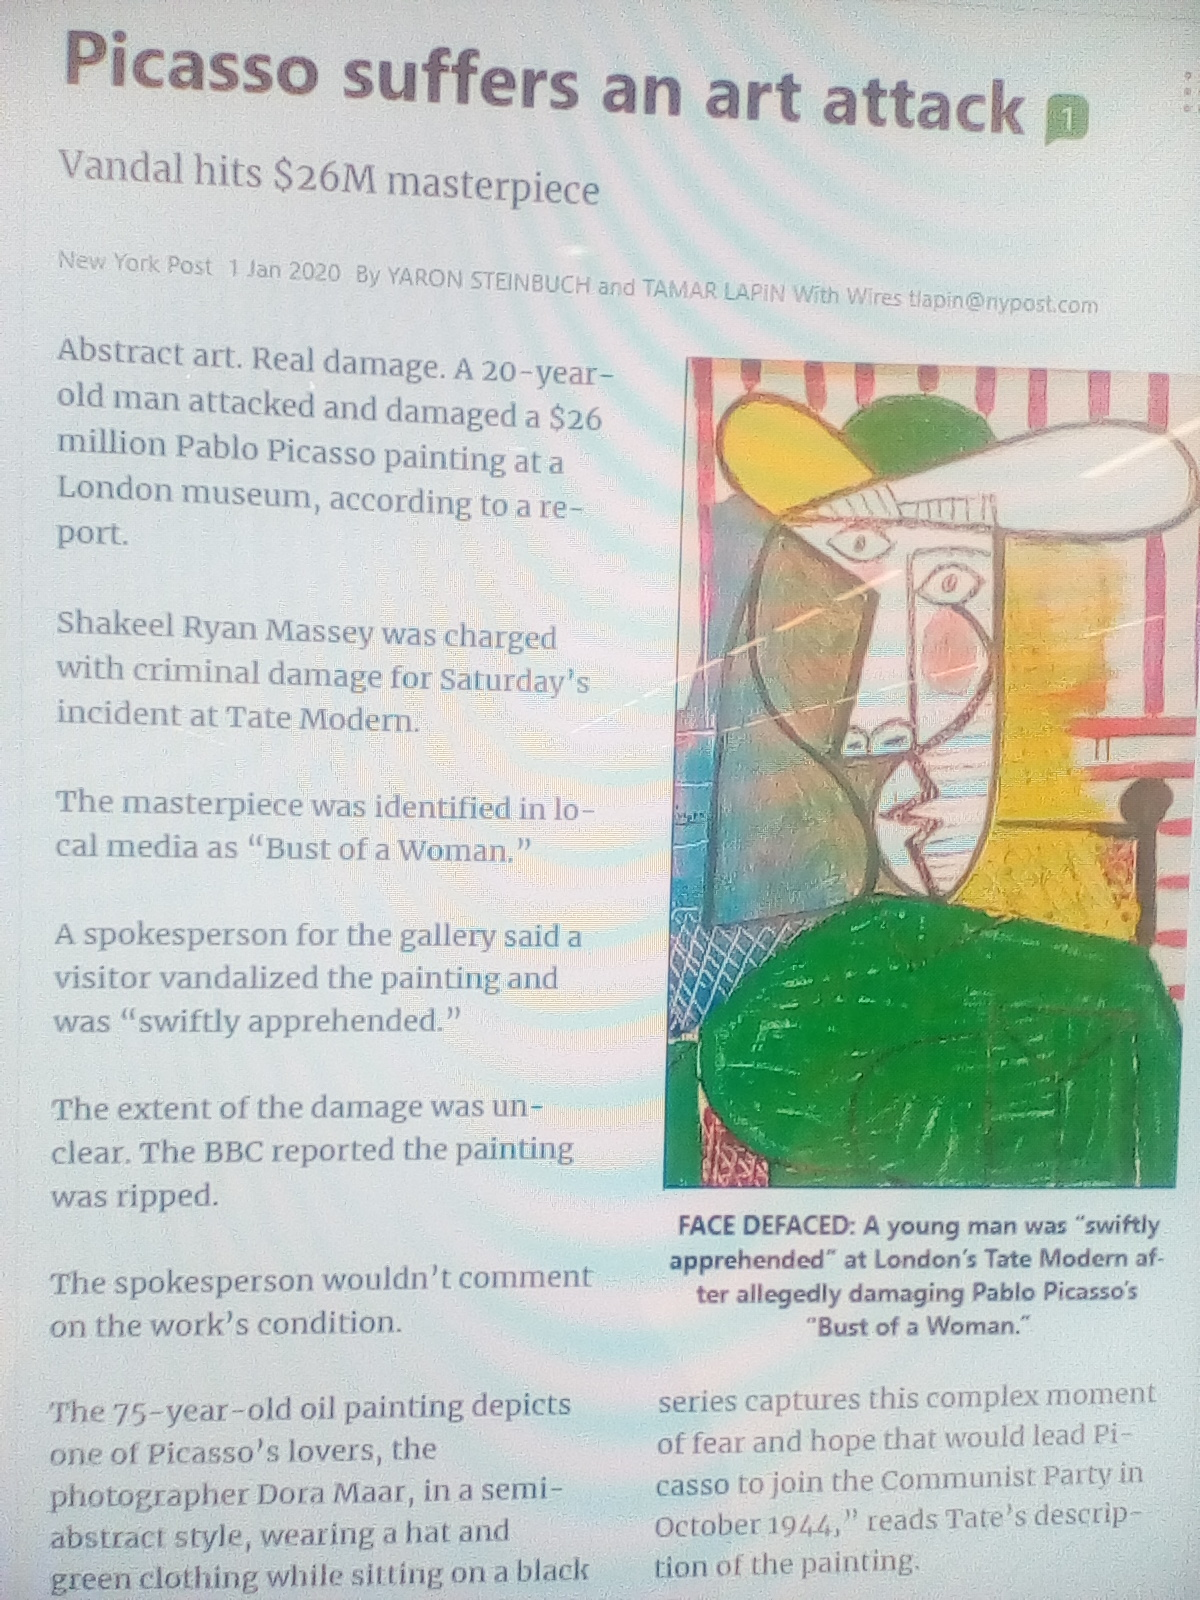 Tate modern 31/12 a bandalism against Picassos painting